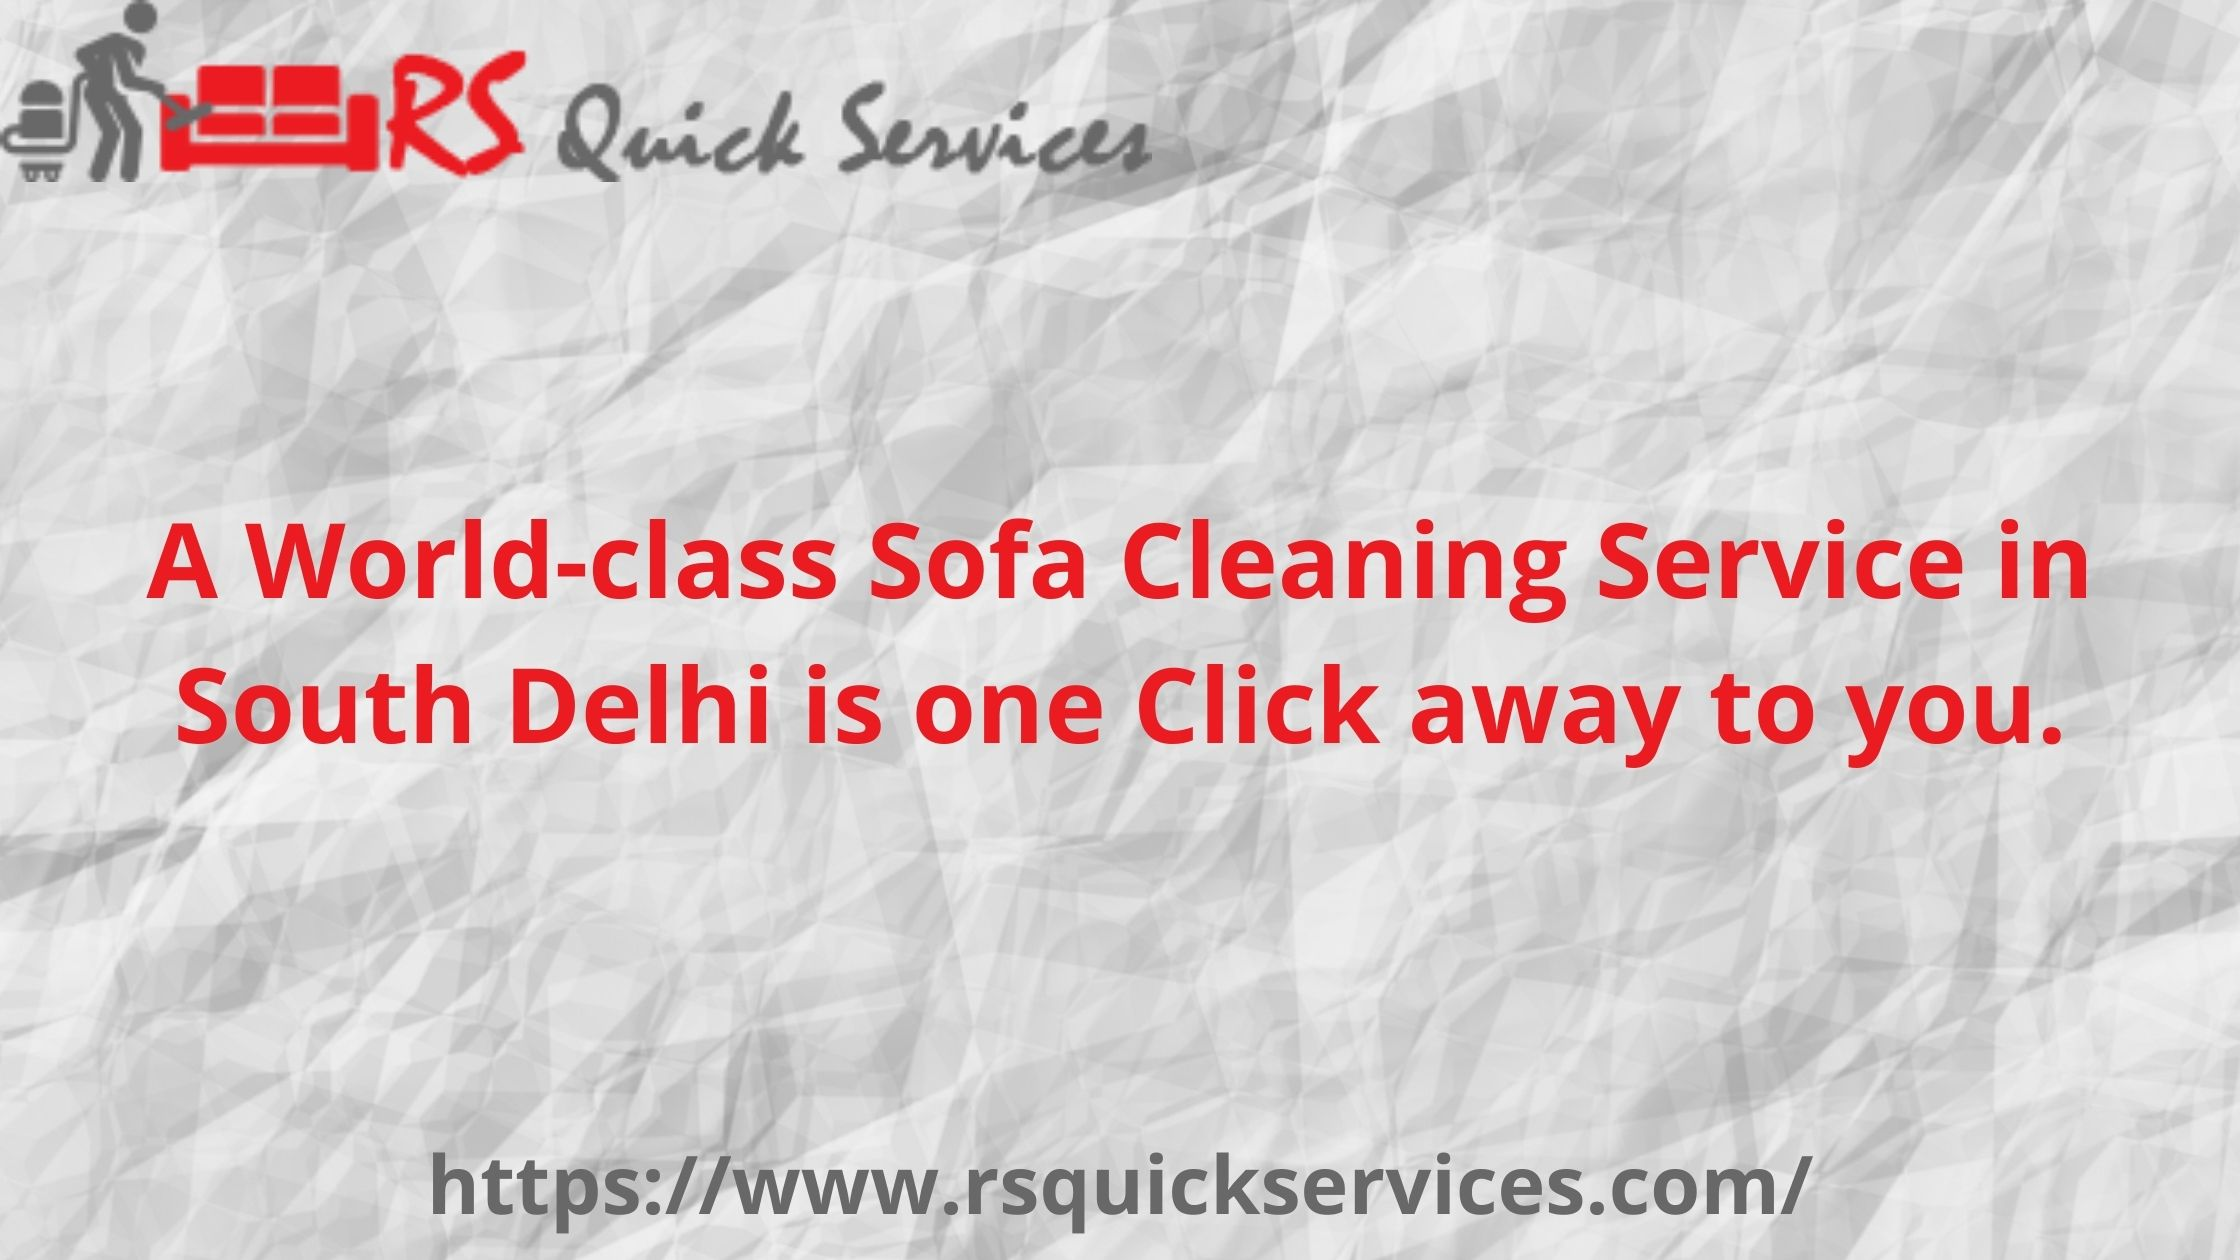 A World-class Sofa Cleaning Service in South Delhi is one Click away to you.